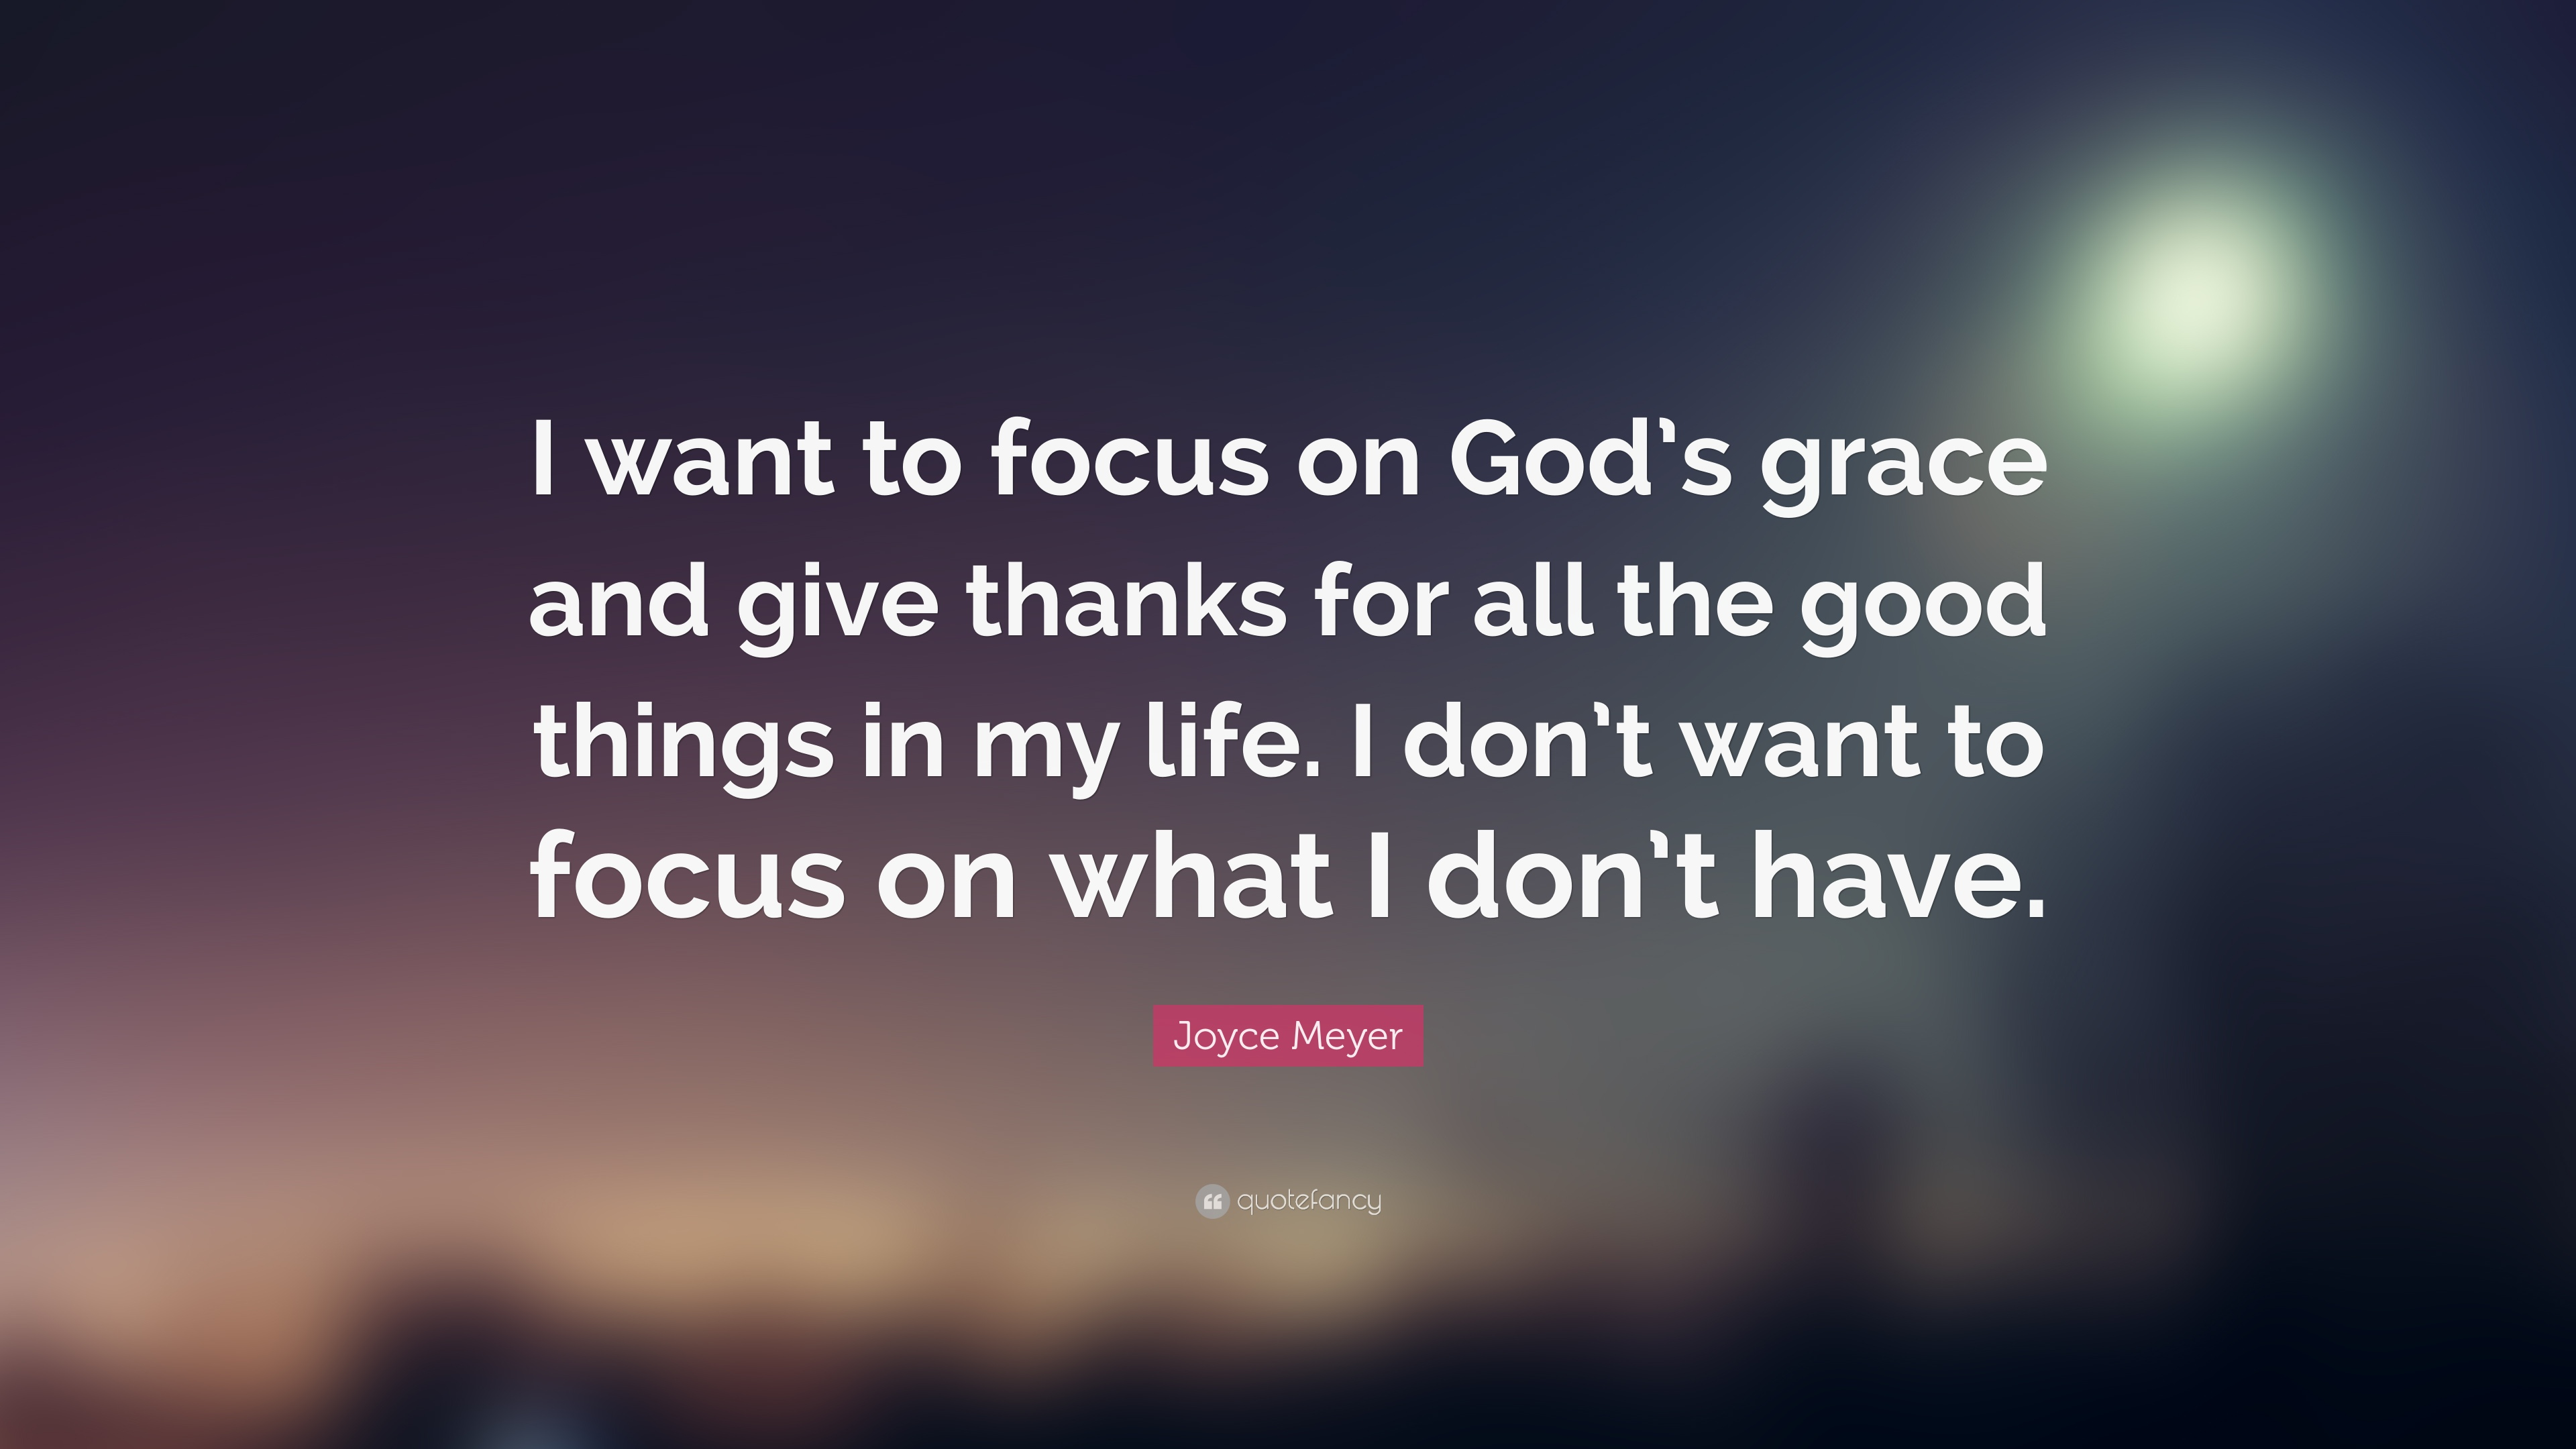 Joyce Meyer Quote I Want To Focus On Gods Grace And Give Thanks